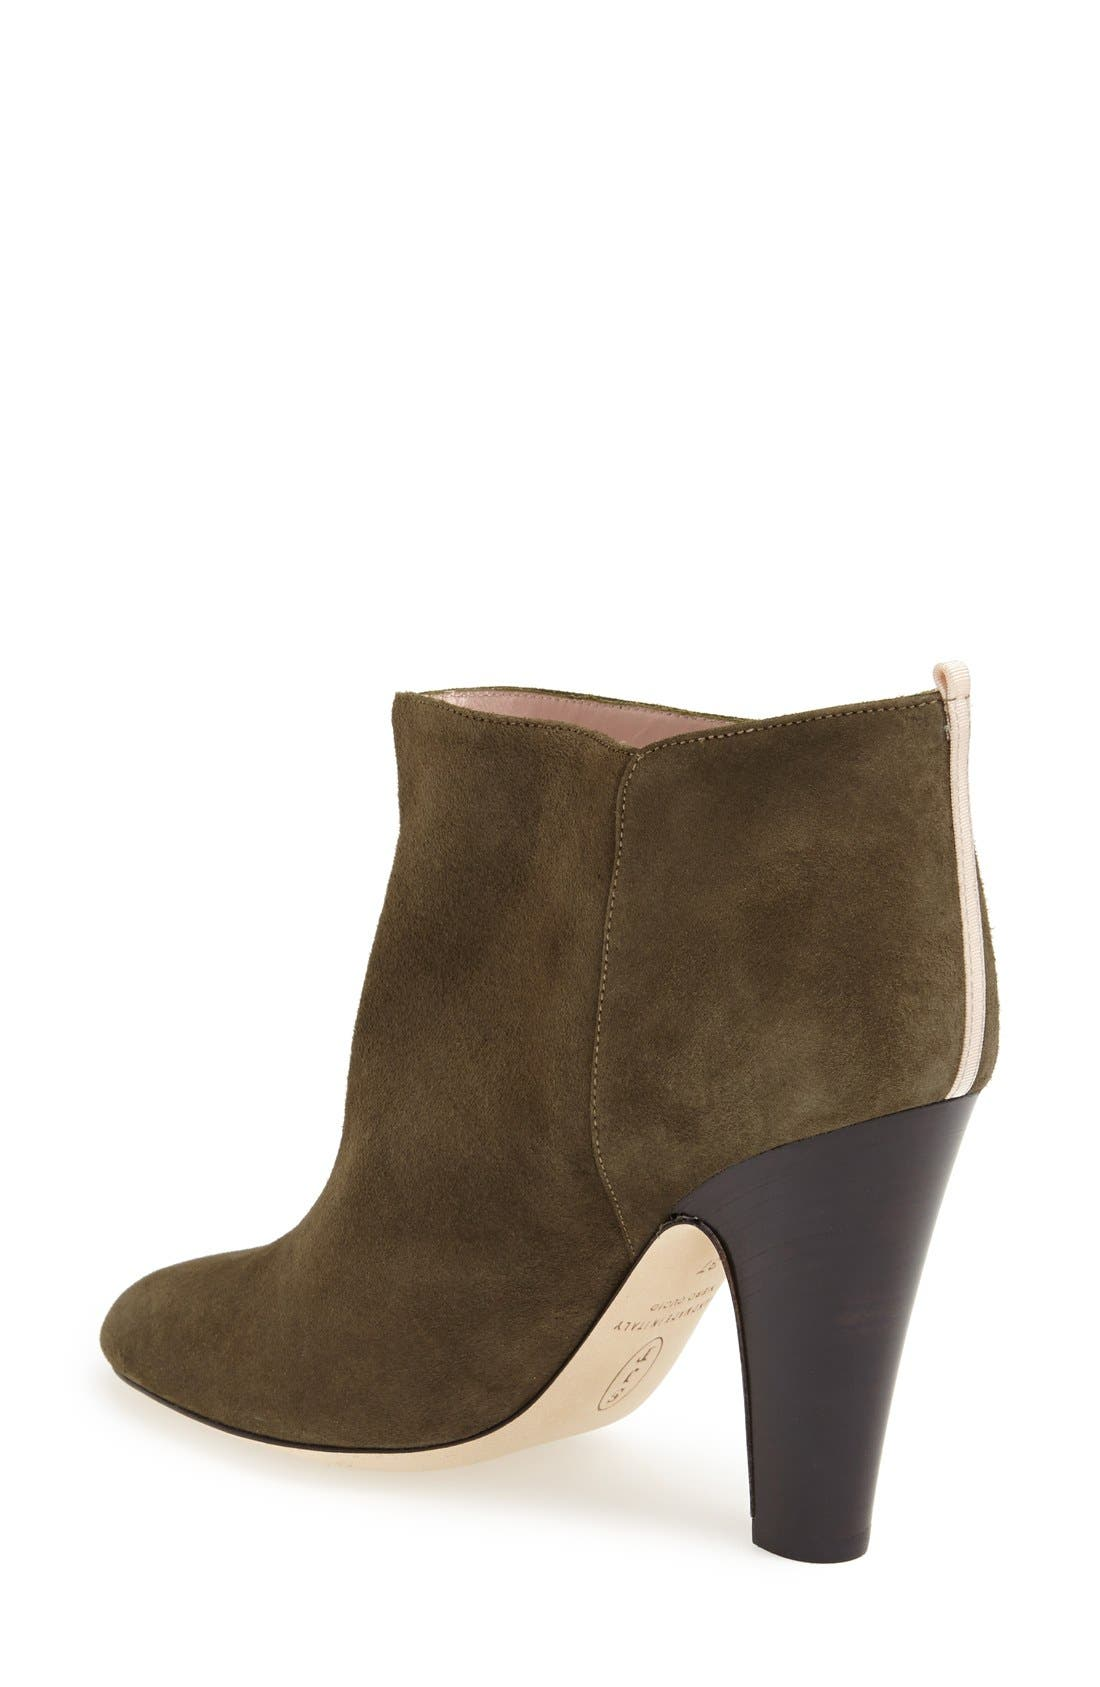 Alternate Image 2  - SJP 'Serge' Suede Bootie (Women)